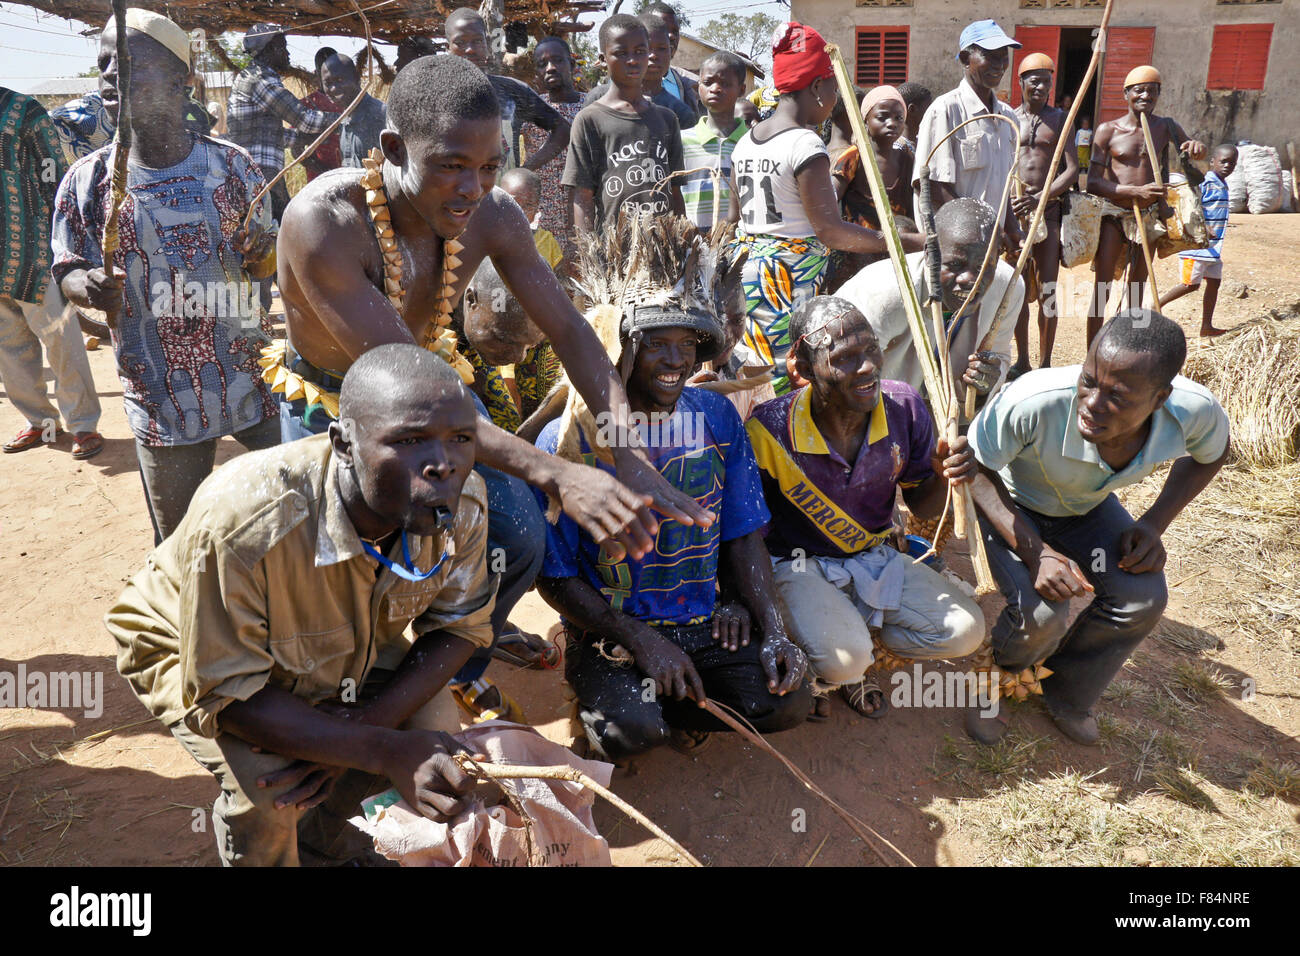 Fulani initiation by whipping (rite of passage to manhood), Copargo, northern Benin - Stock Image